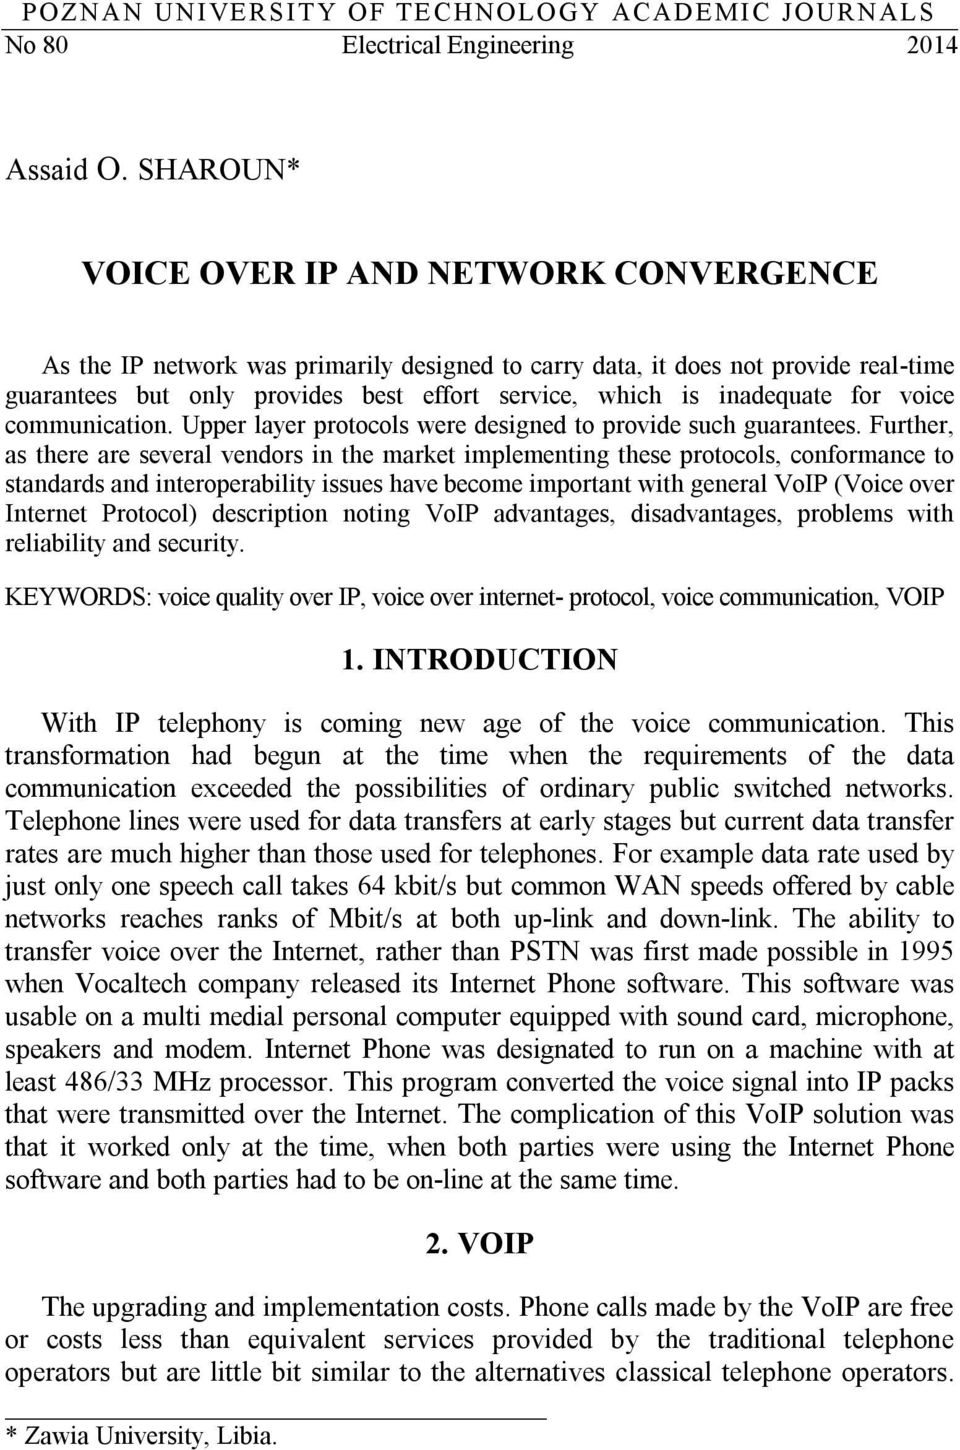 inadequate for voice communication. Upper layer protocols were designed to provide such guarantees.